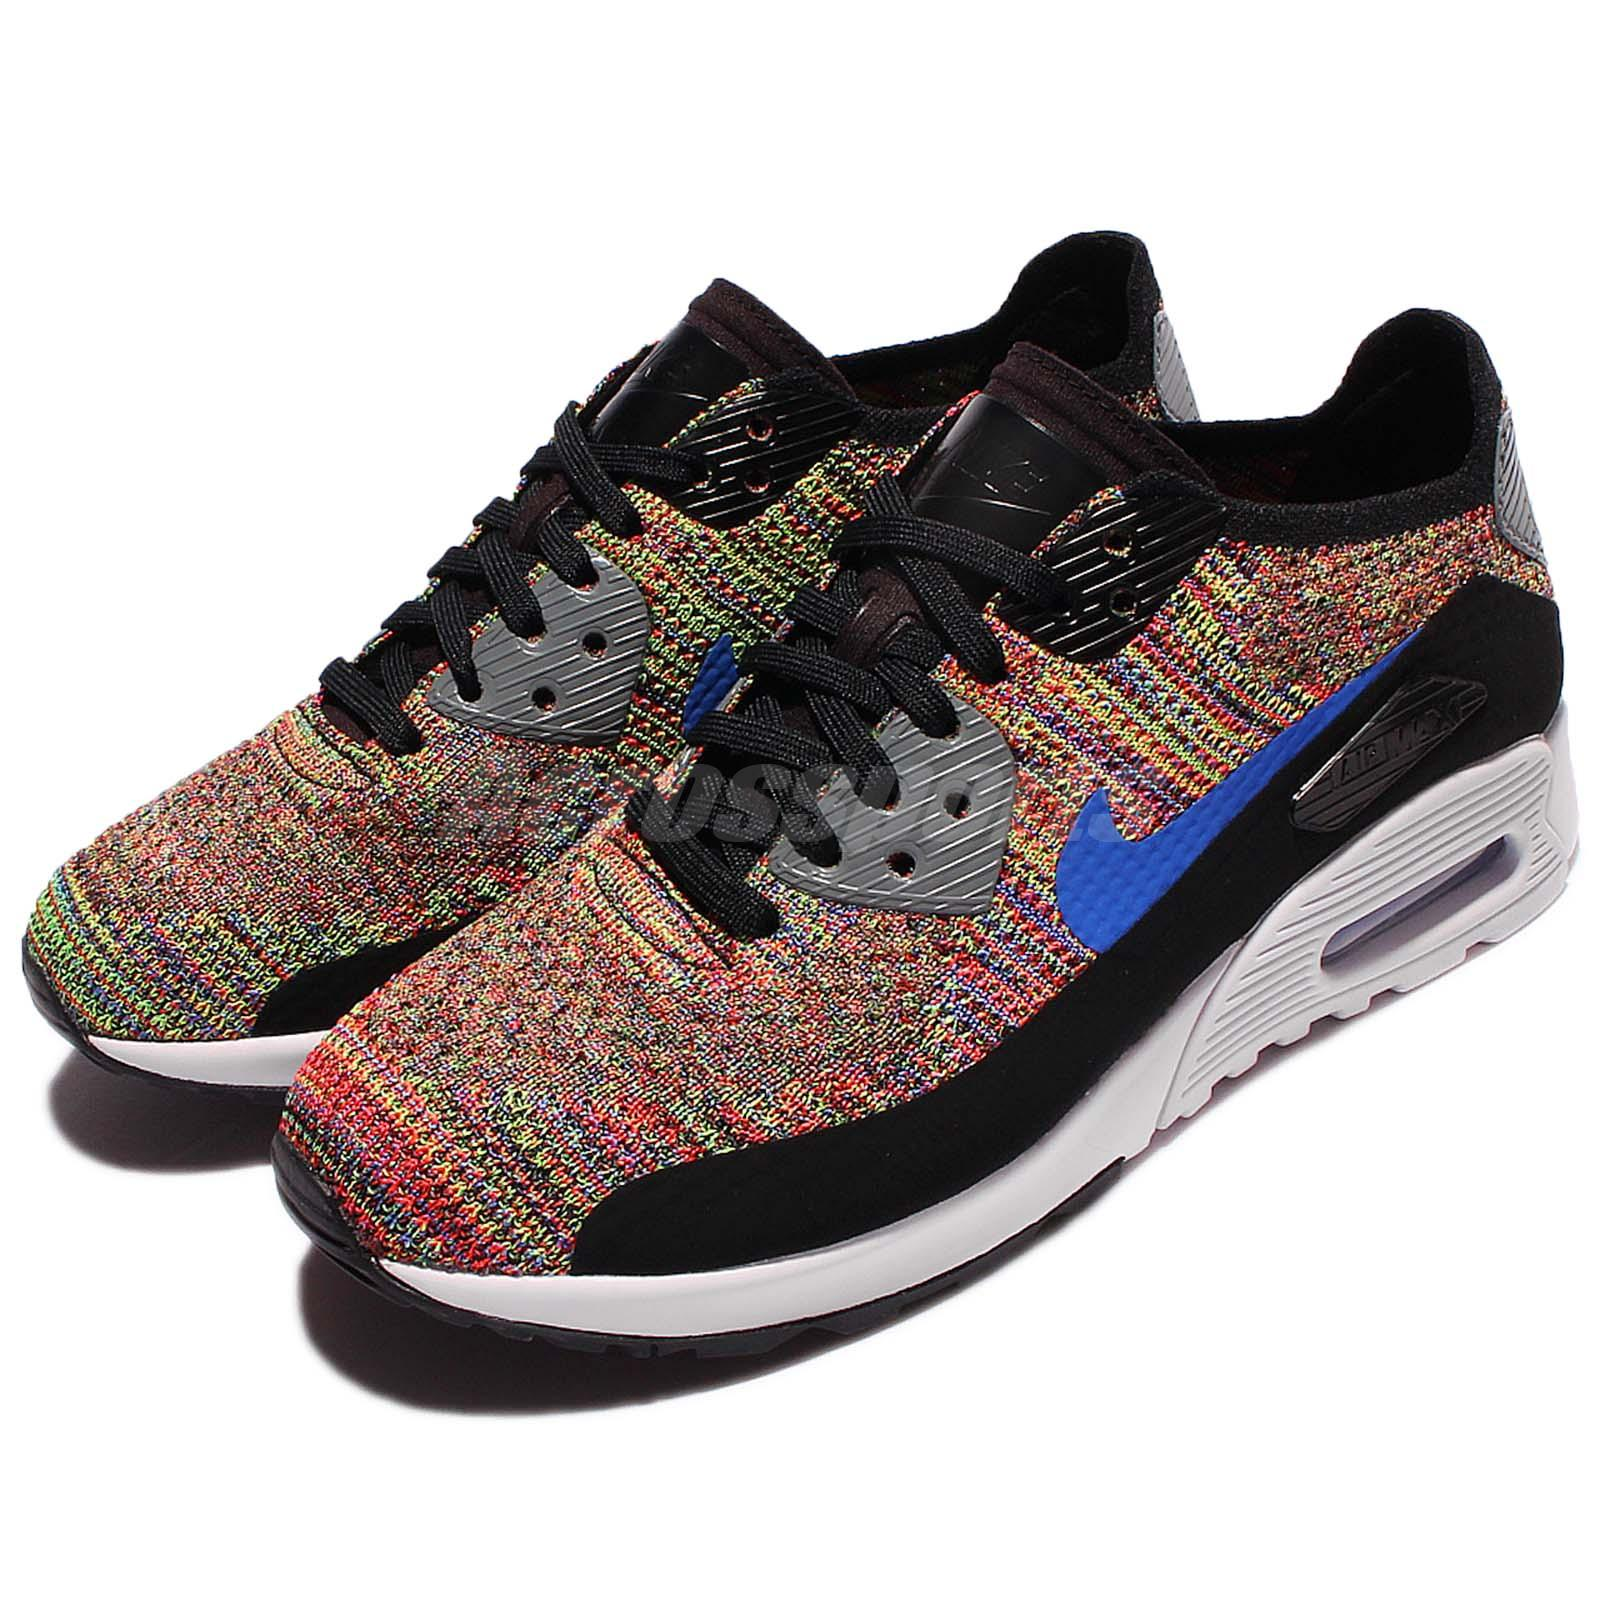 728e448cb16 Details about Wmns Nike Air Max 90 Ultra 2.0 Flyknit Multi-Color Rainbow  Women Shoe 881109-001